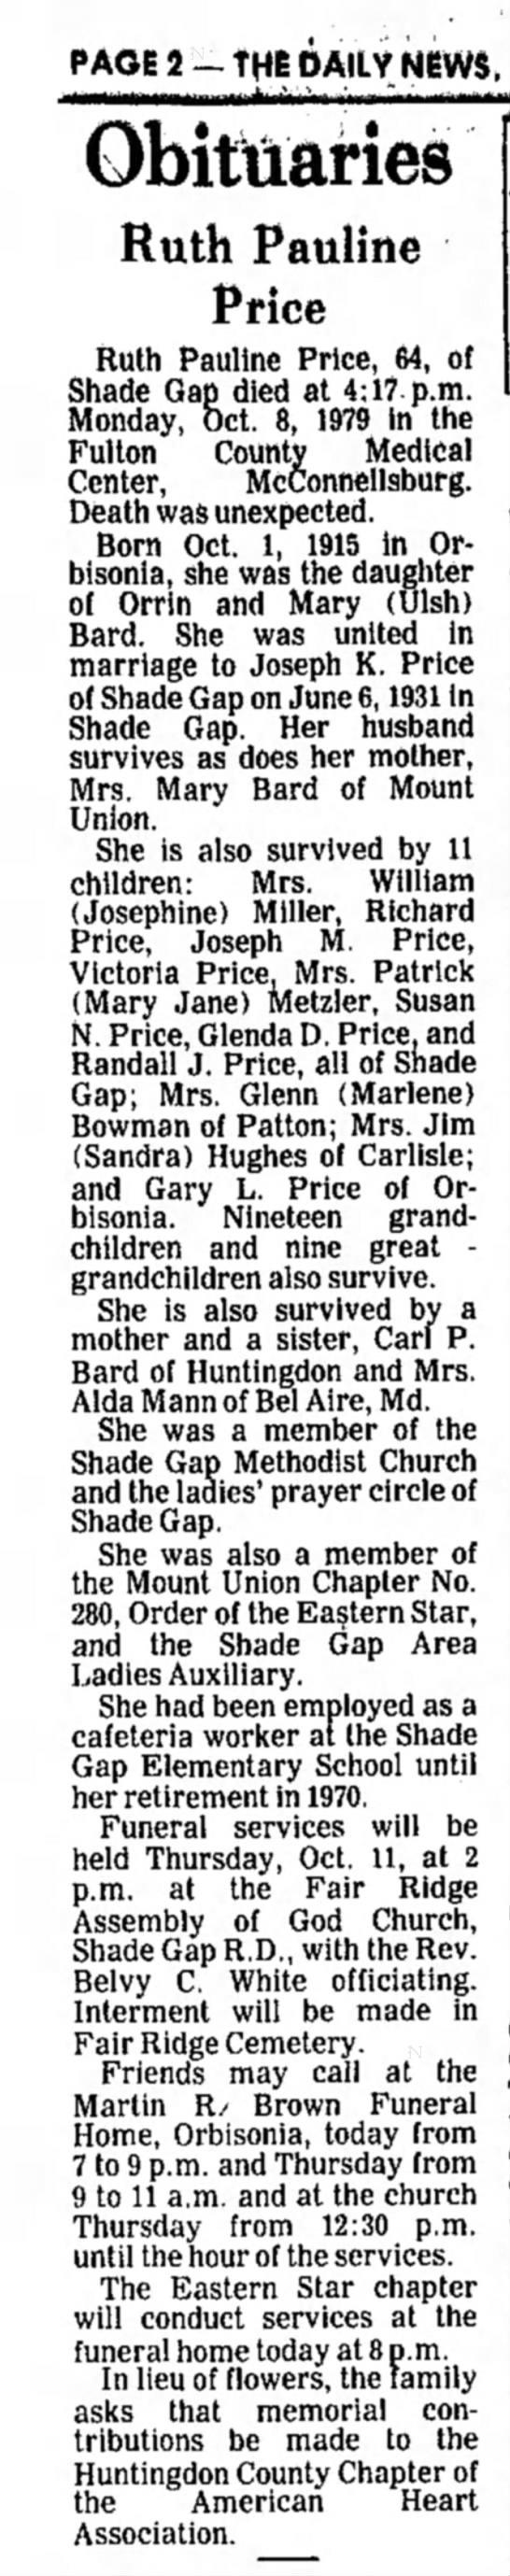 Ruth Pauline Price-obit-TDN-p.2-10 Oct 1979